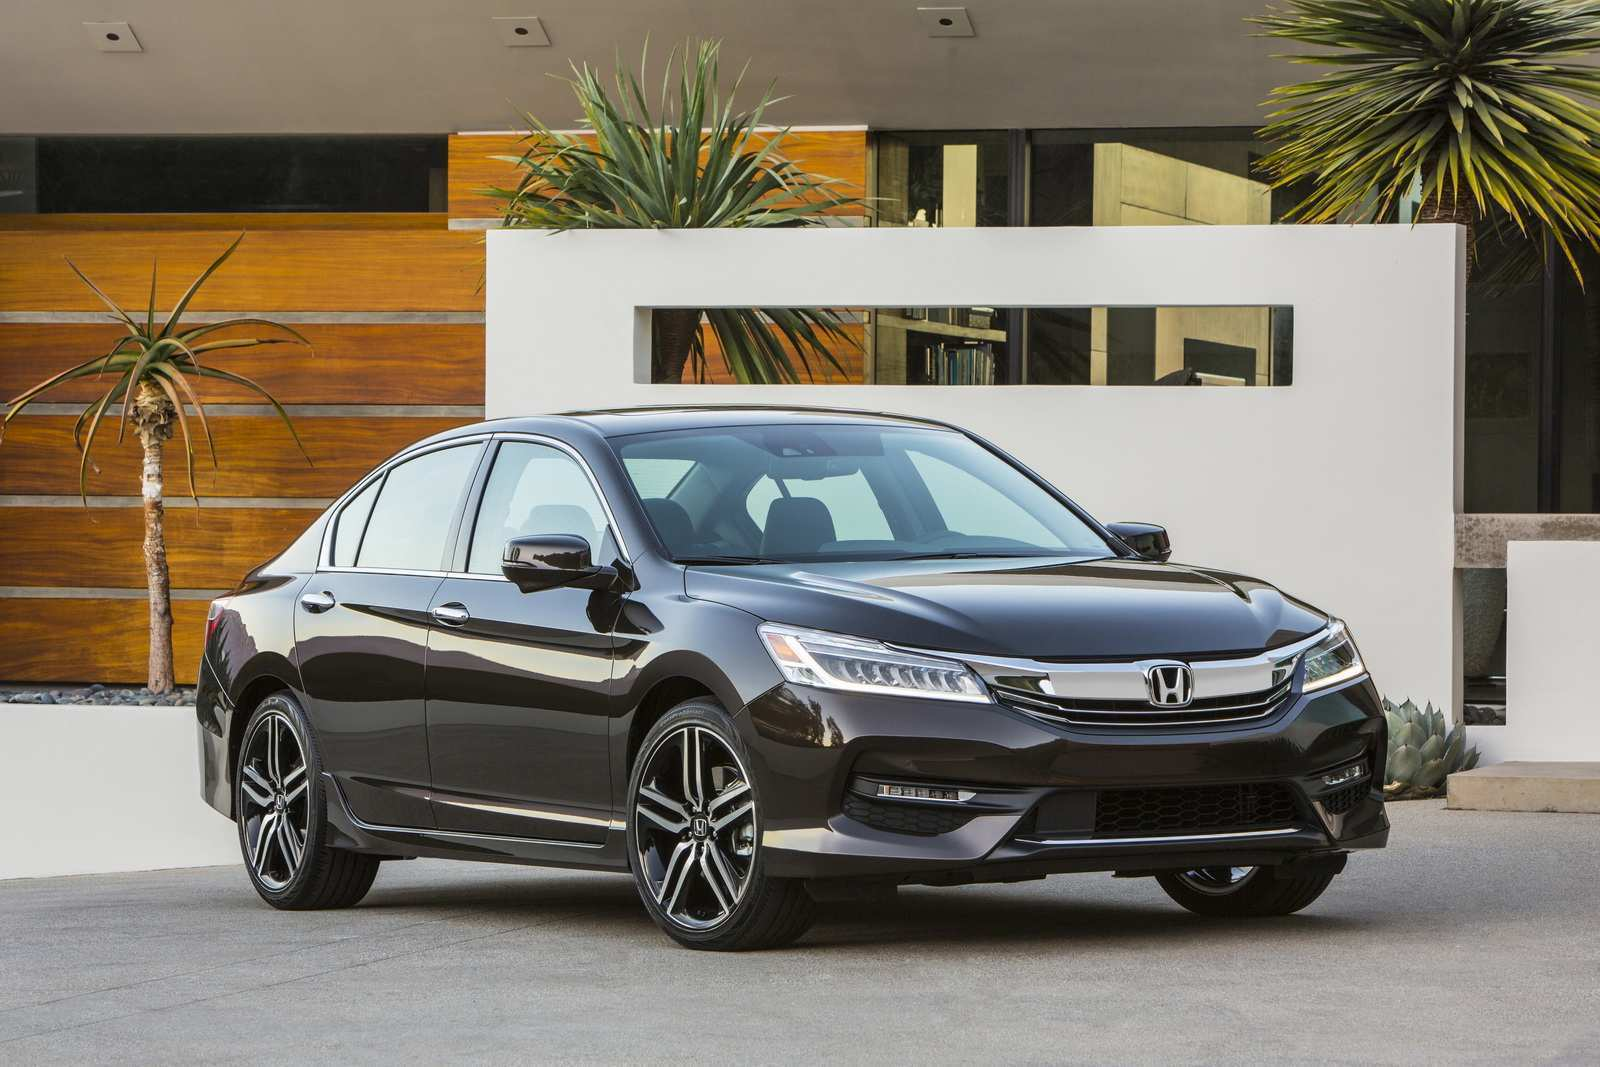 86 All New Honda Accord 2020 Model Photos with Honda Accord 2020 Model